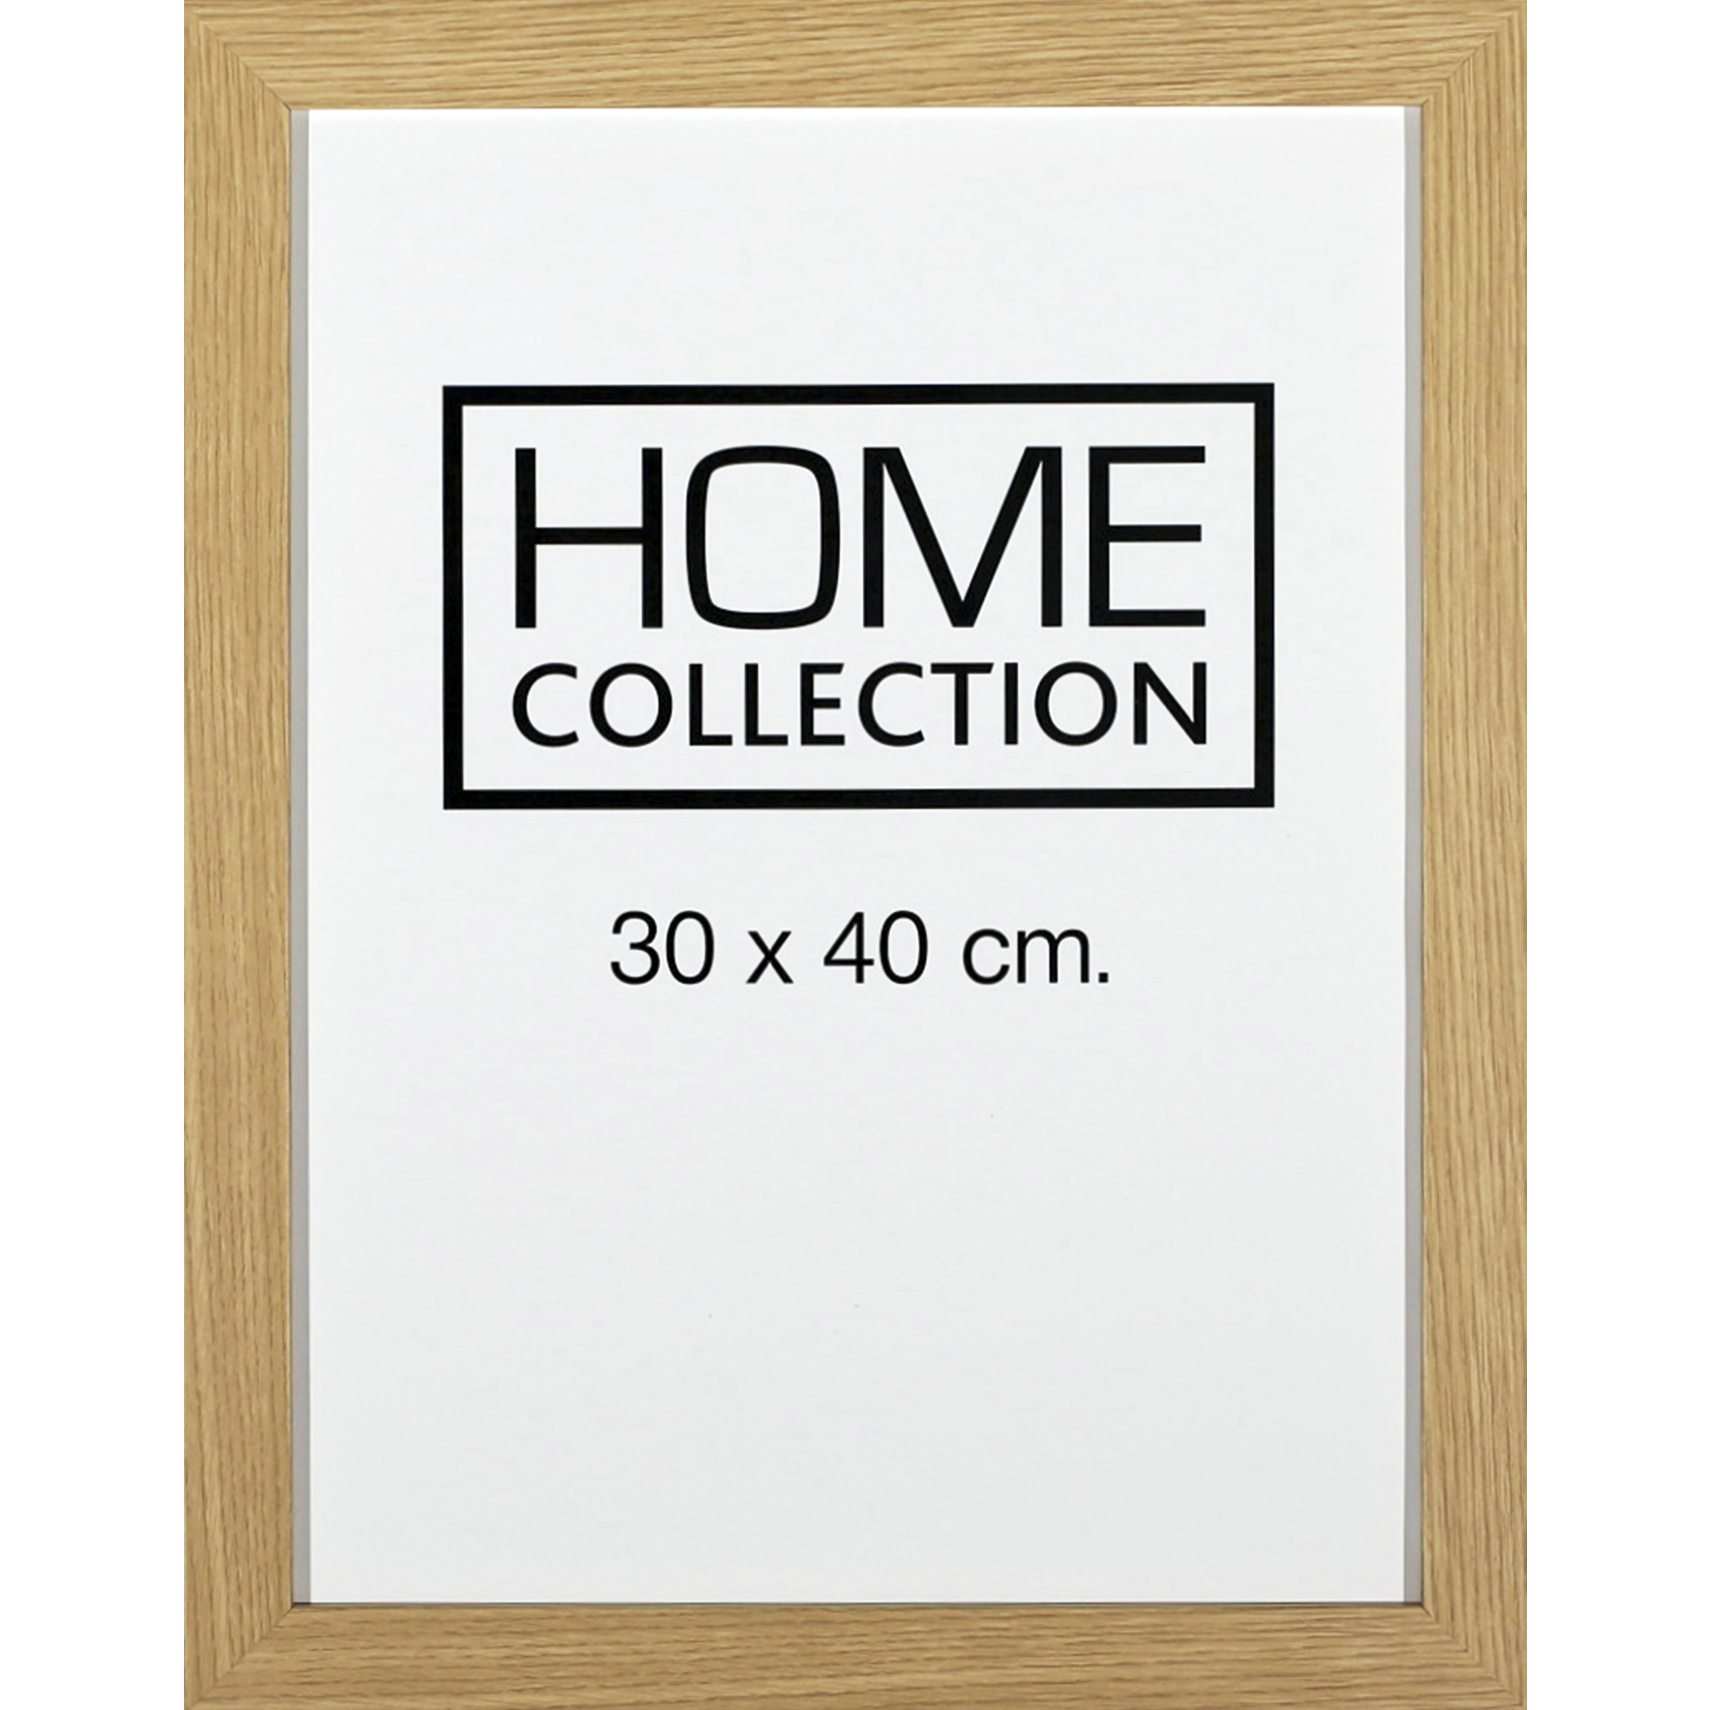 HOME COLLECTION Ramme 30 x 40 x 2 cm - Egetræ ramme